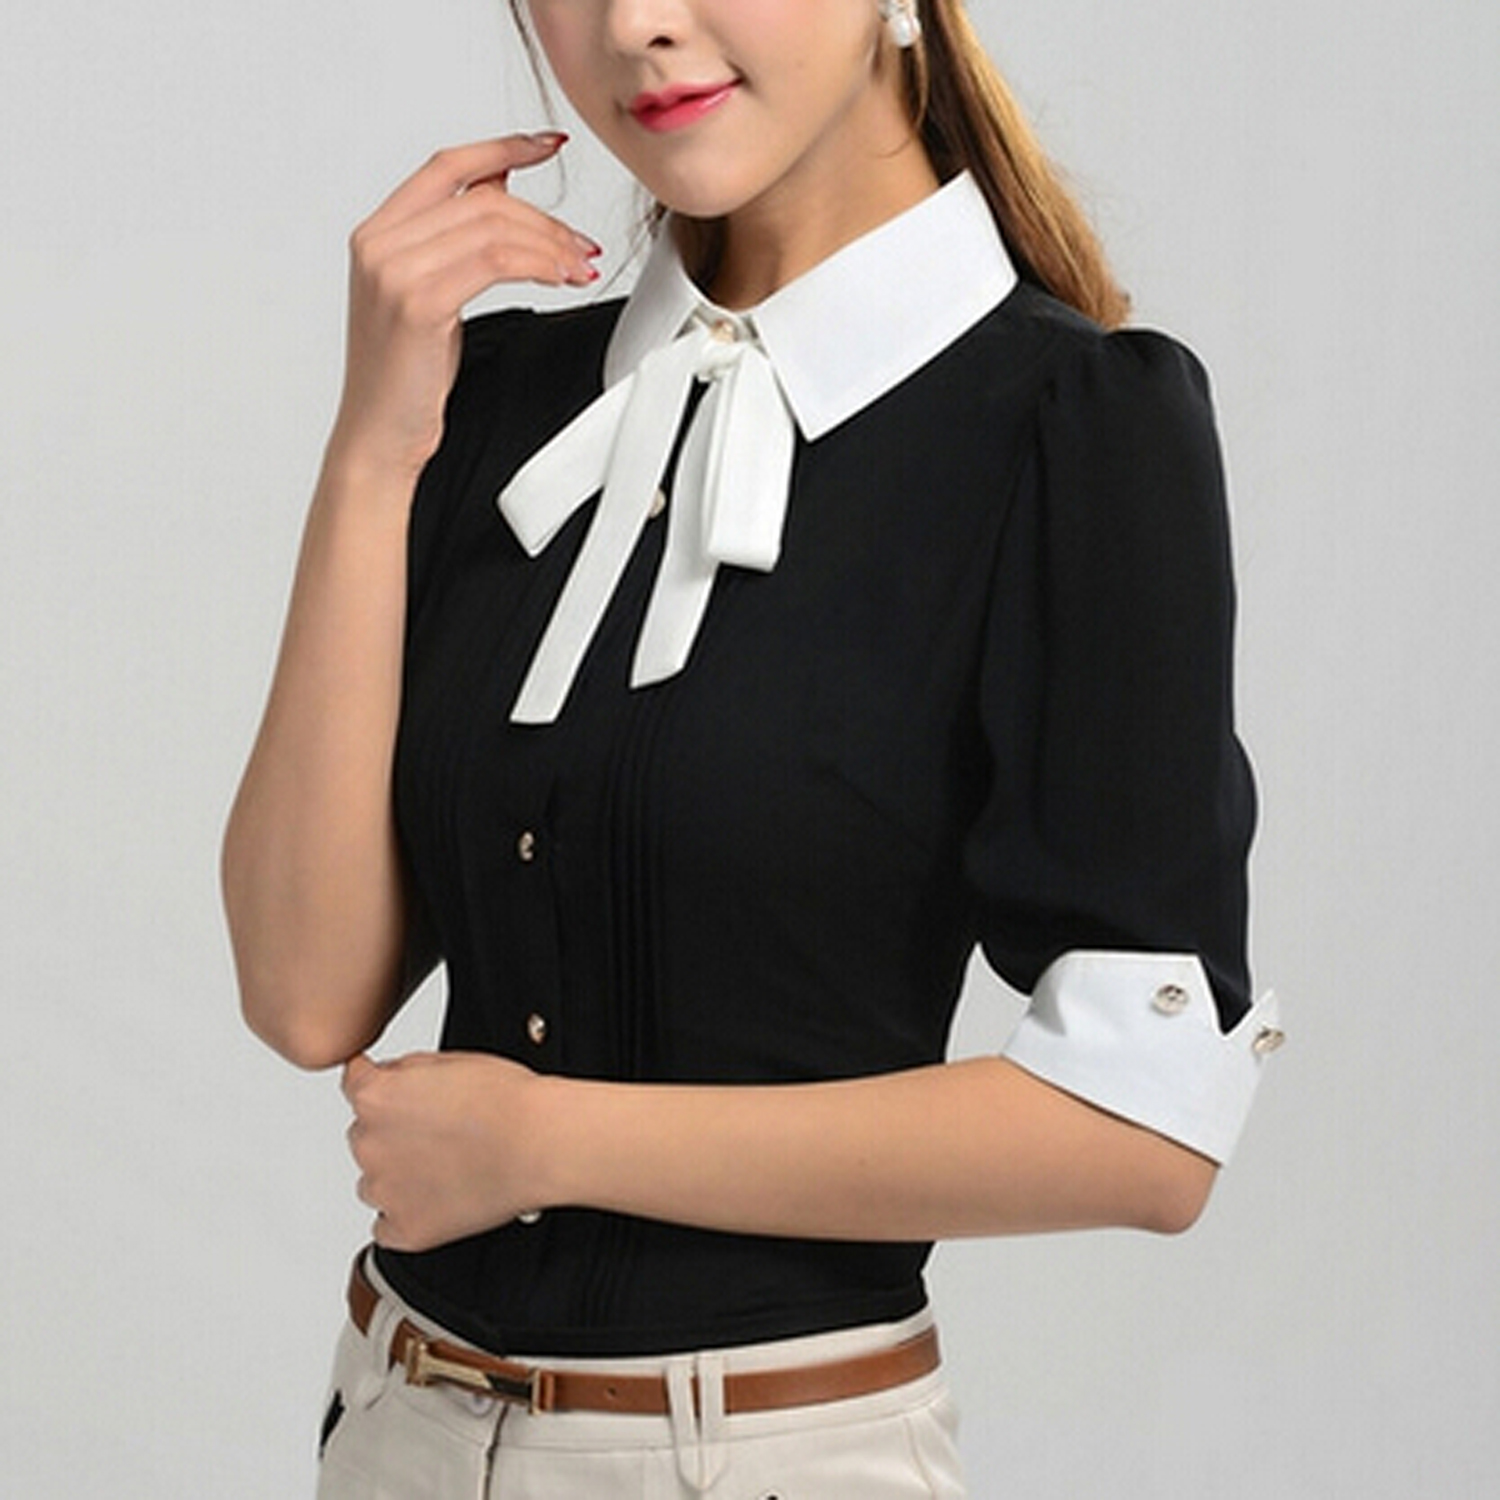 Black Shirt White Collar Womens Artee Shirt